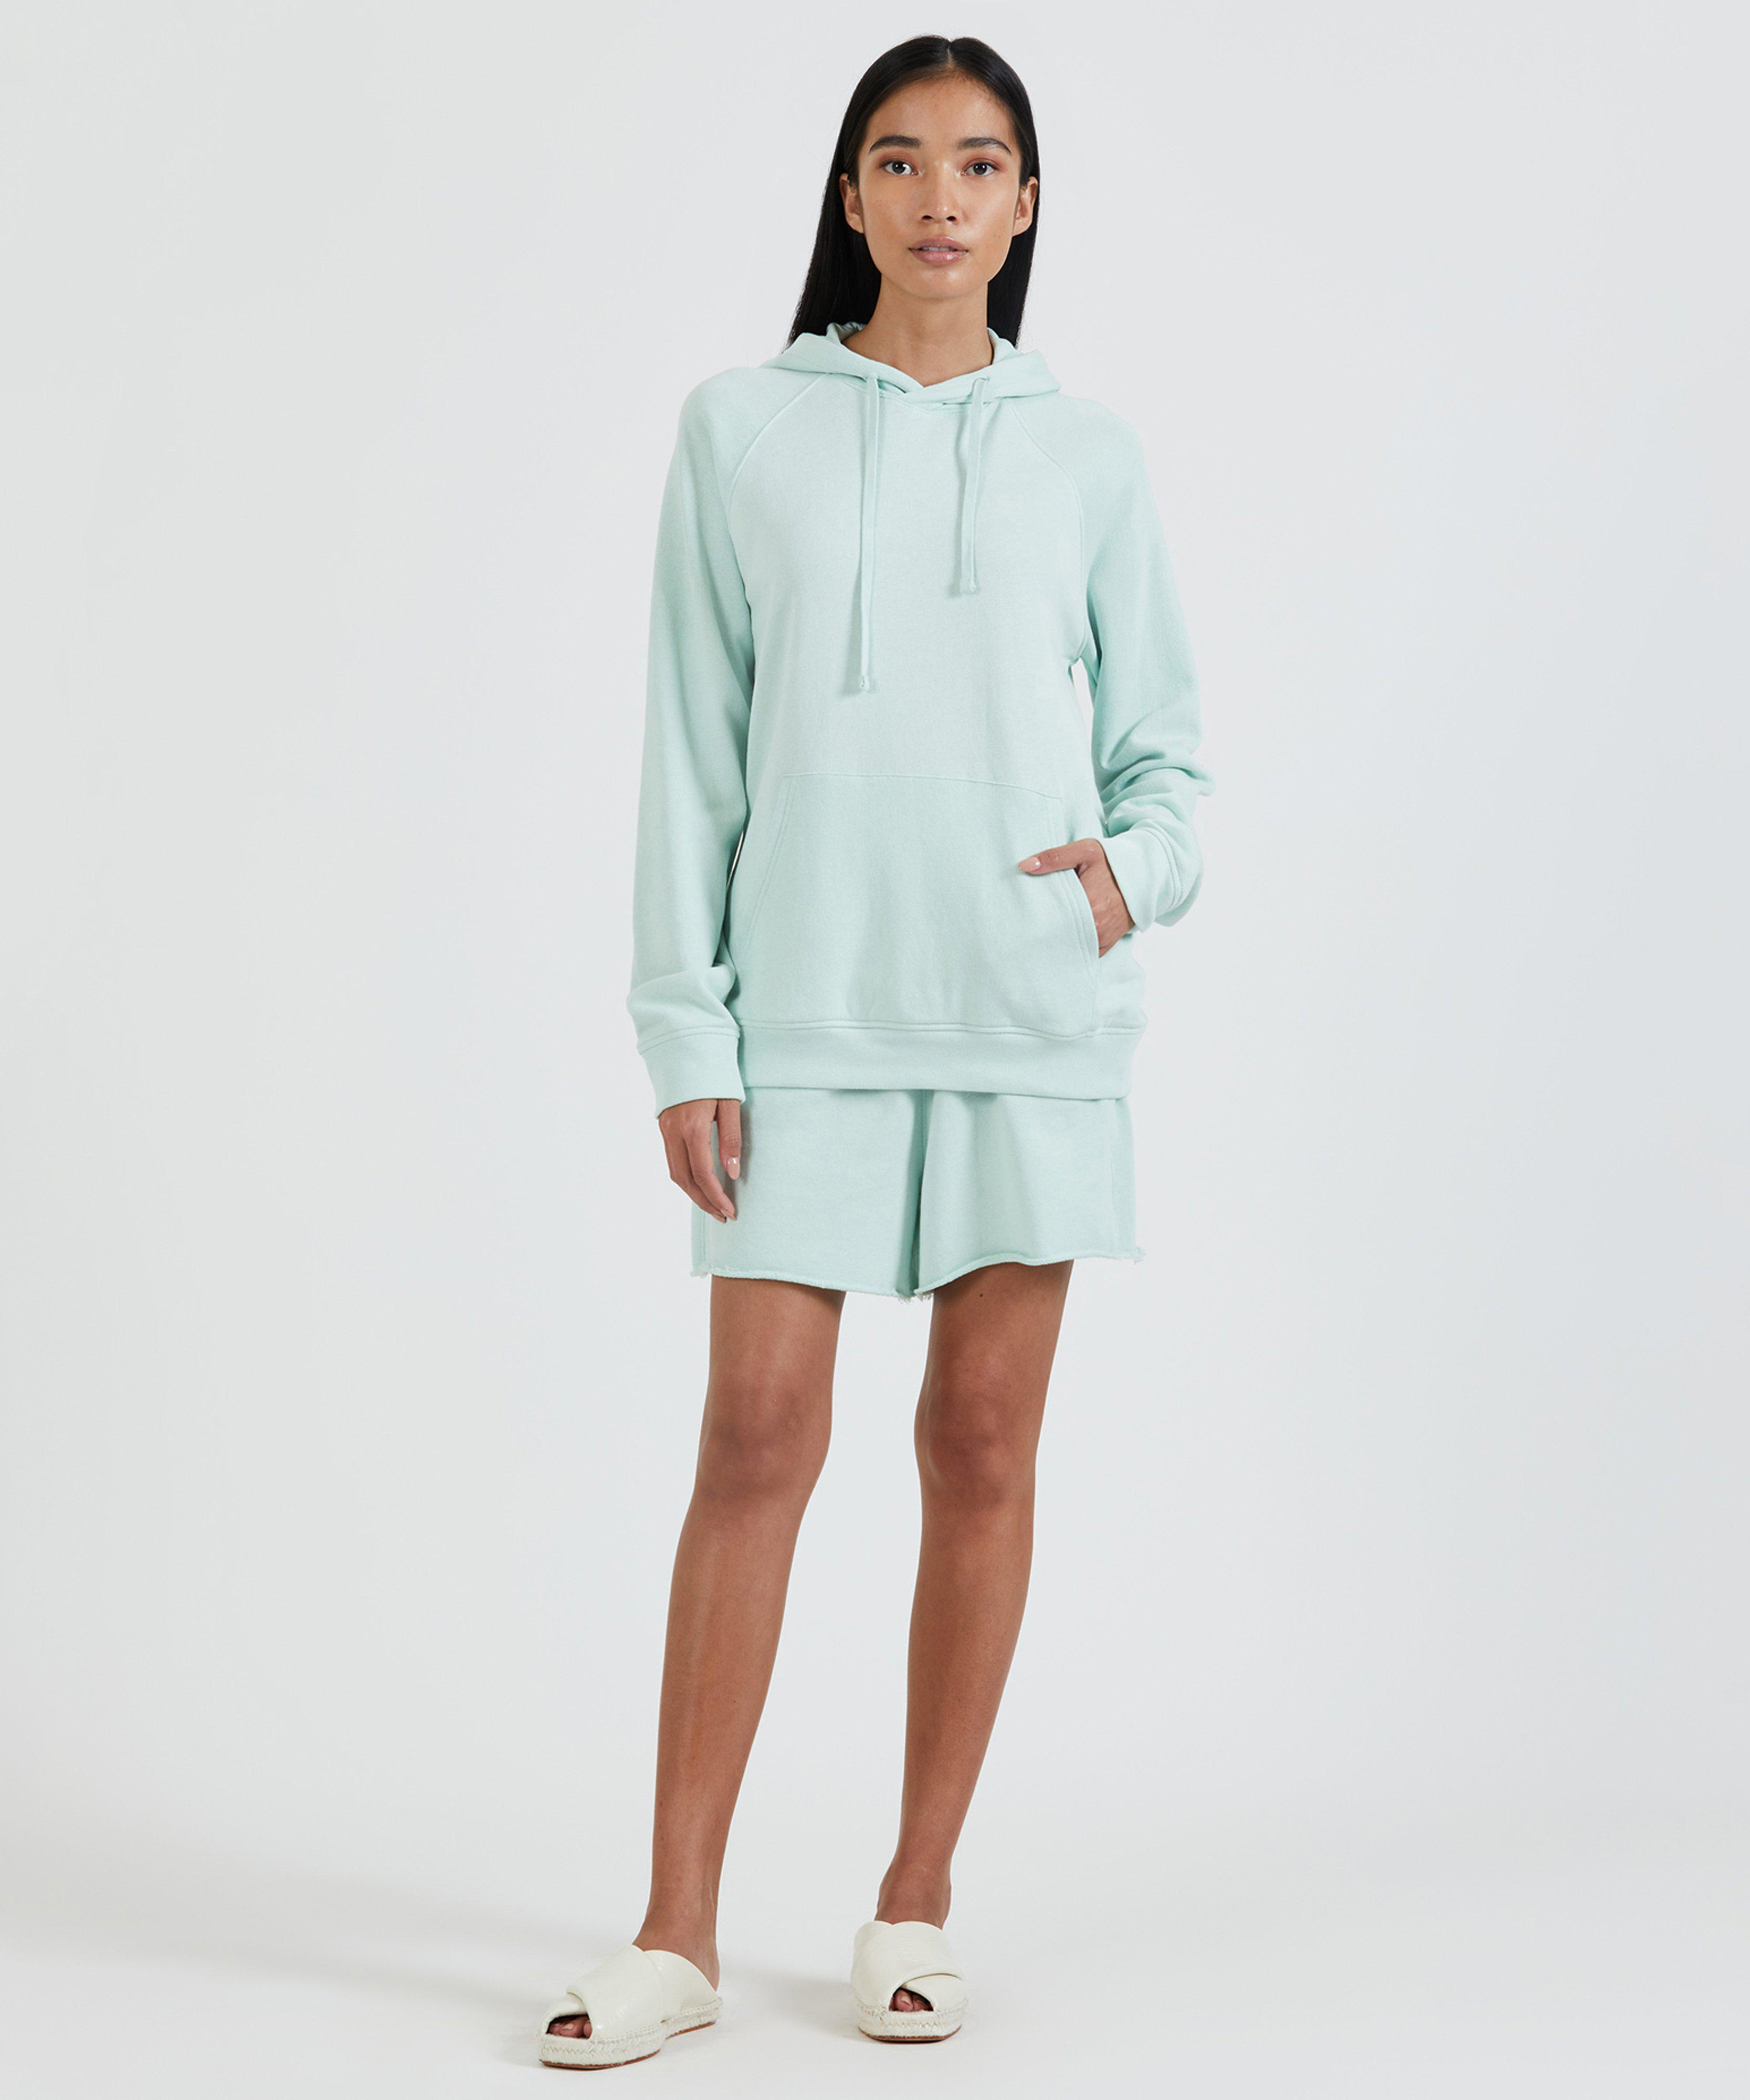 French Terry Pull-Over Hoodie - Mint 2